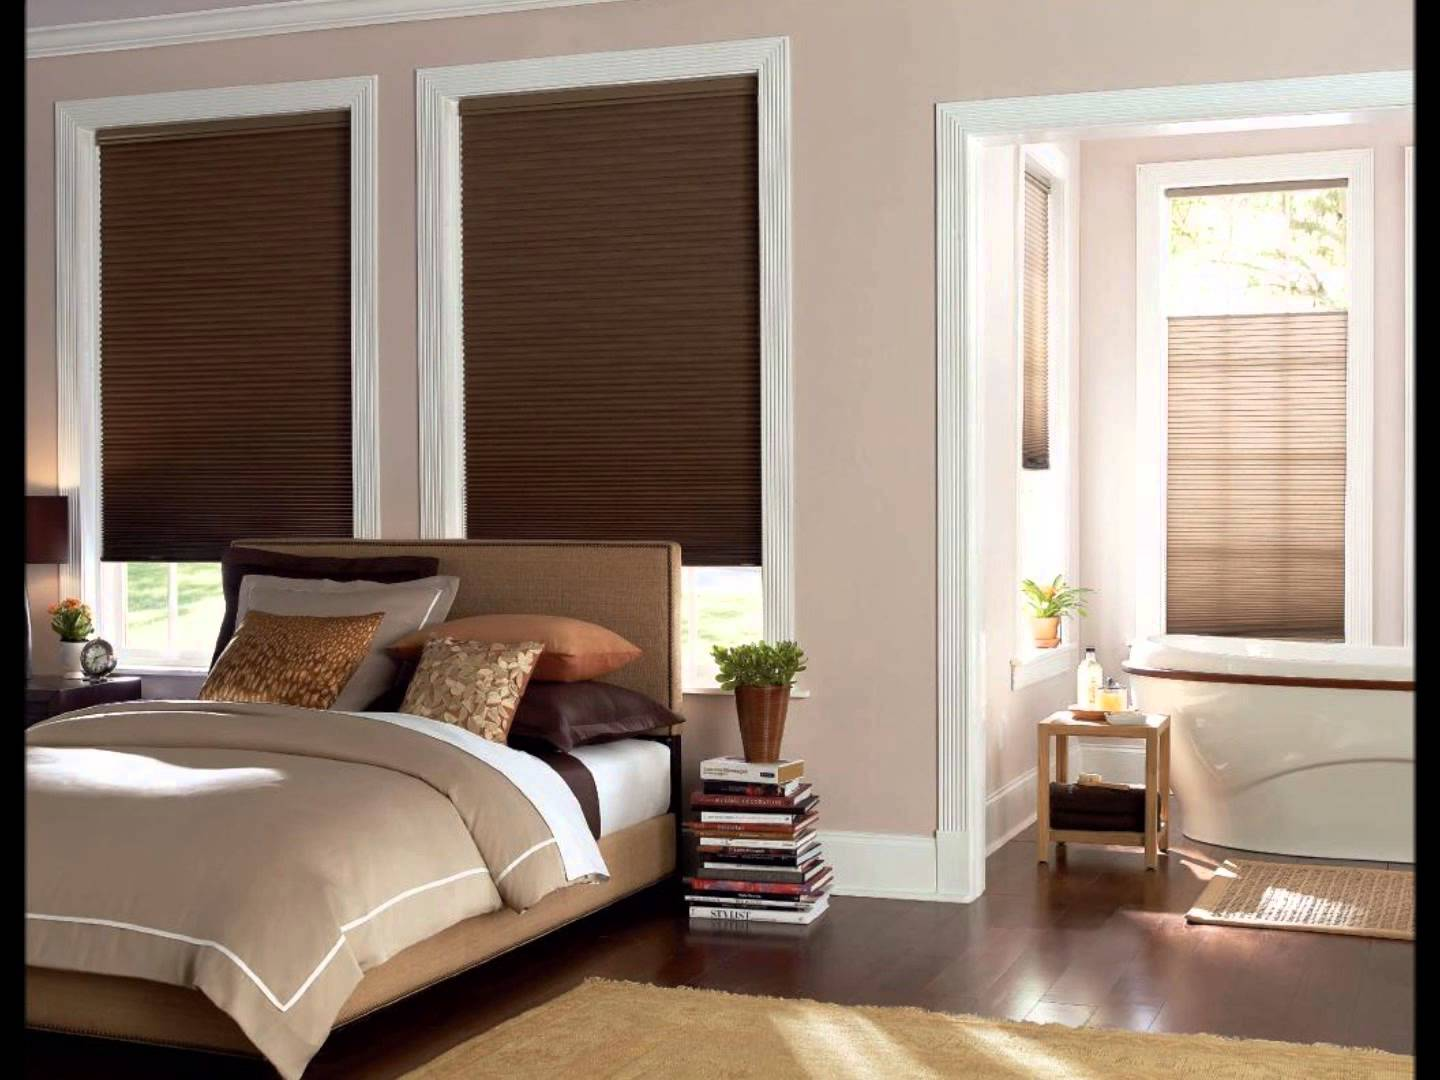 Warm Tones Of Caramel Bedroom Color Scheme Bedroom Paint Colors Build